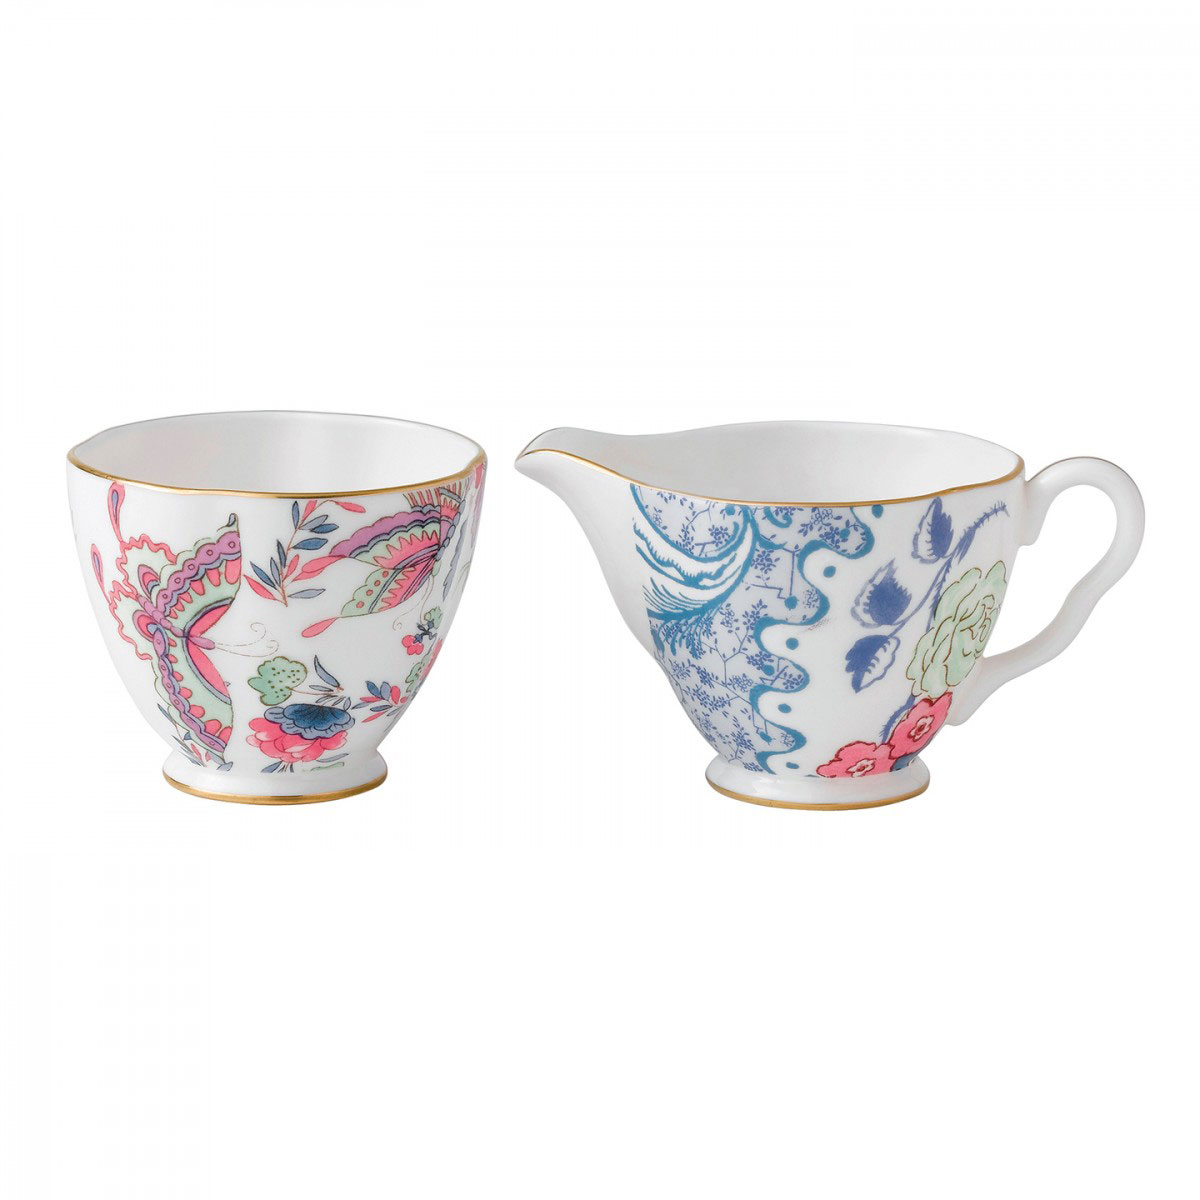 Wedgwood China Butterfly Bloom Tea Story - Creamer and Sugar